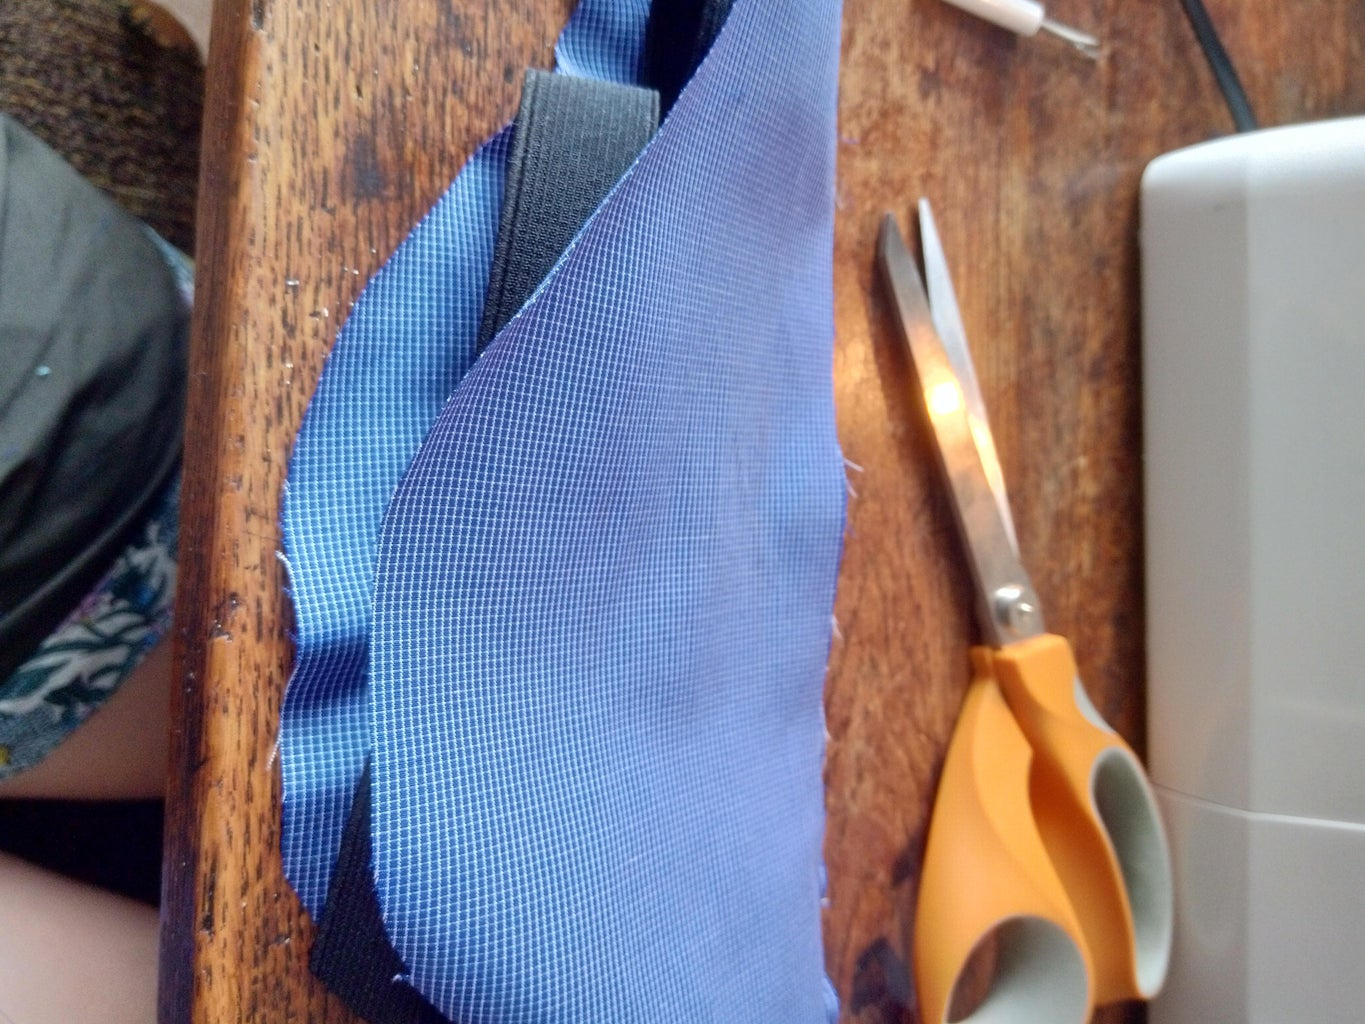 Sew the Elastic, Clip and Back Piece